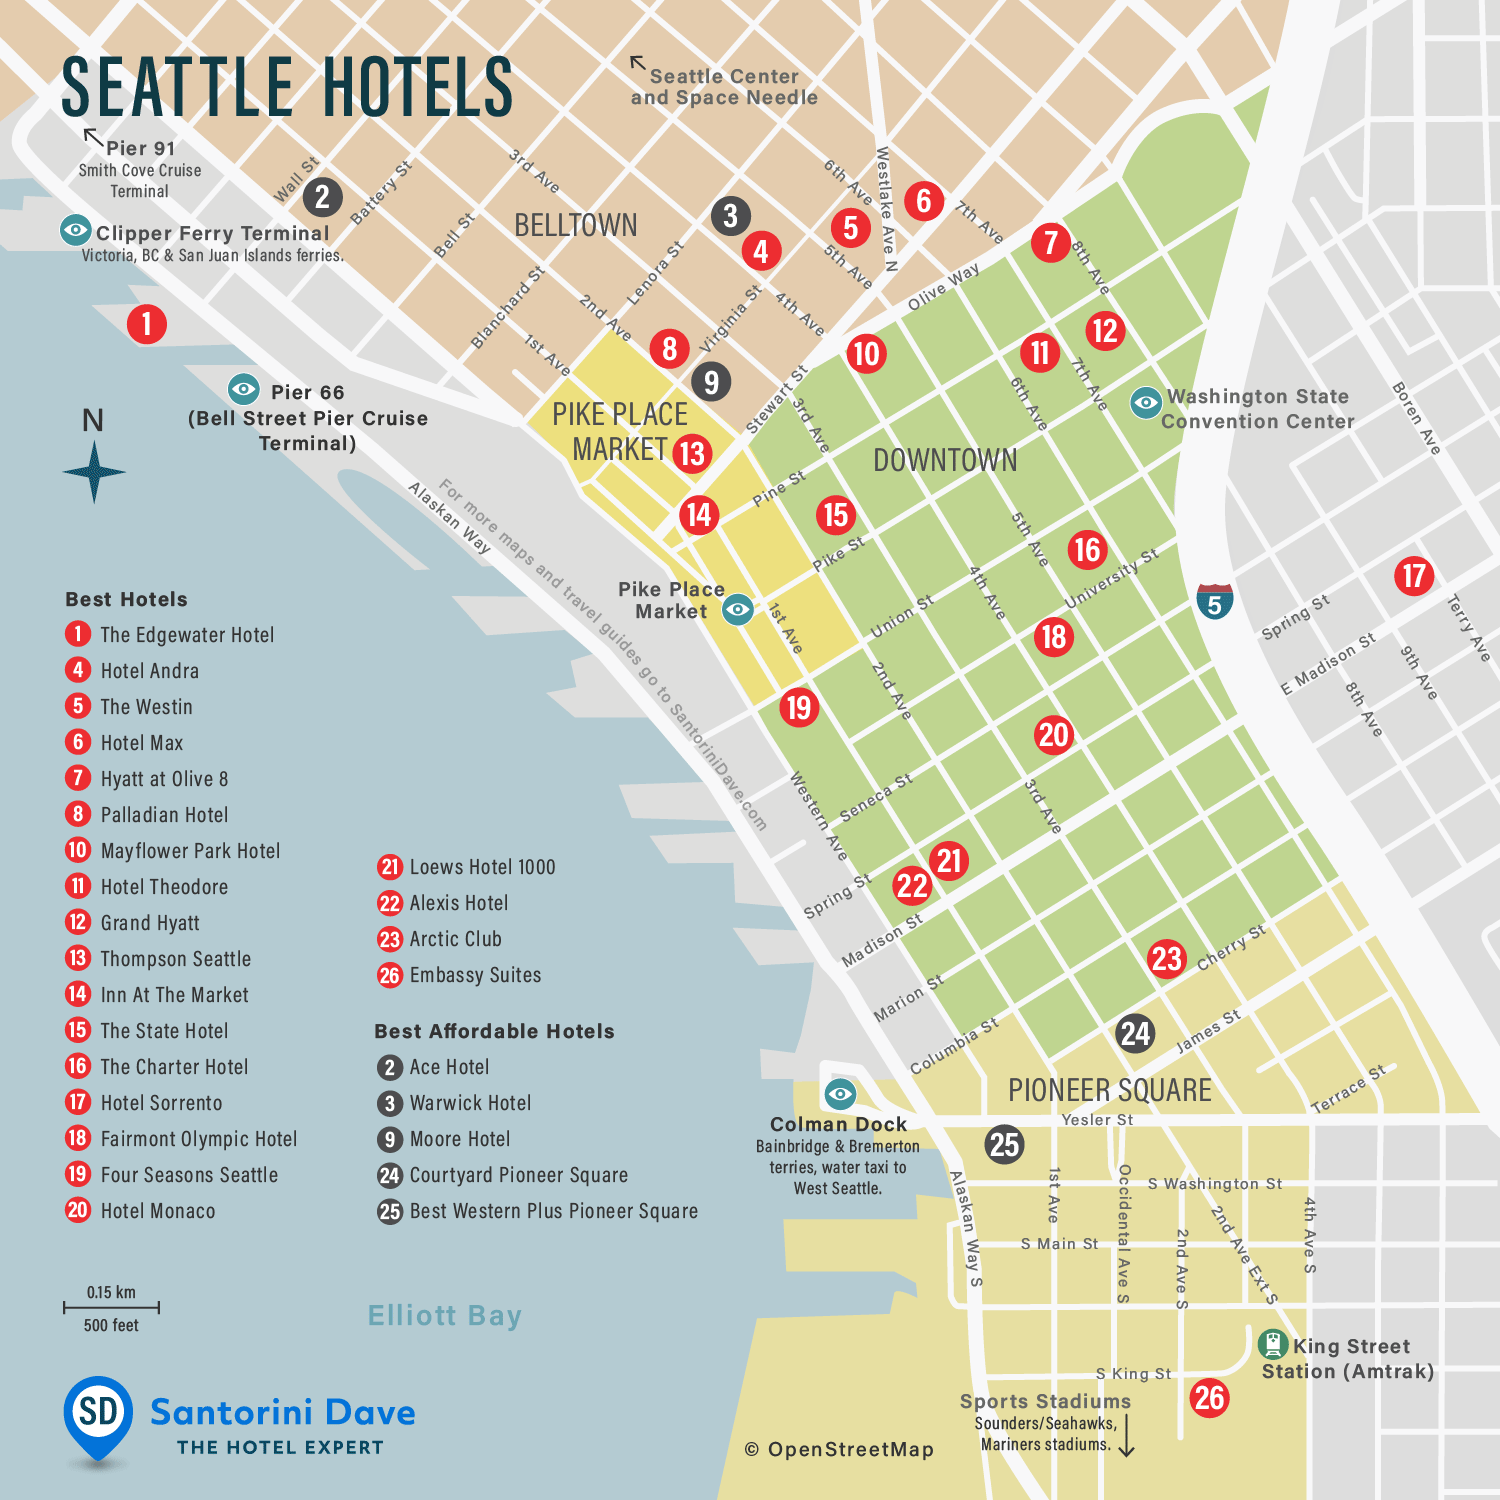 Map of Seattle Hotels